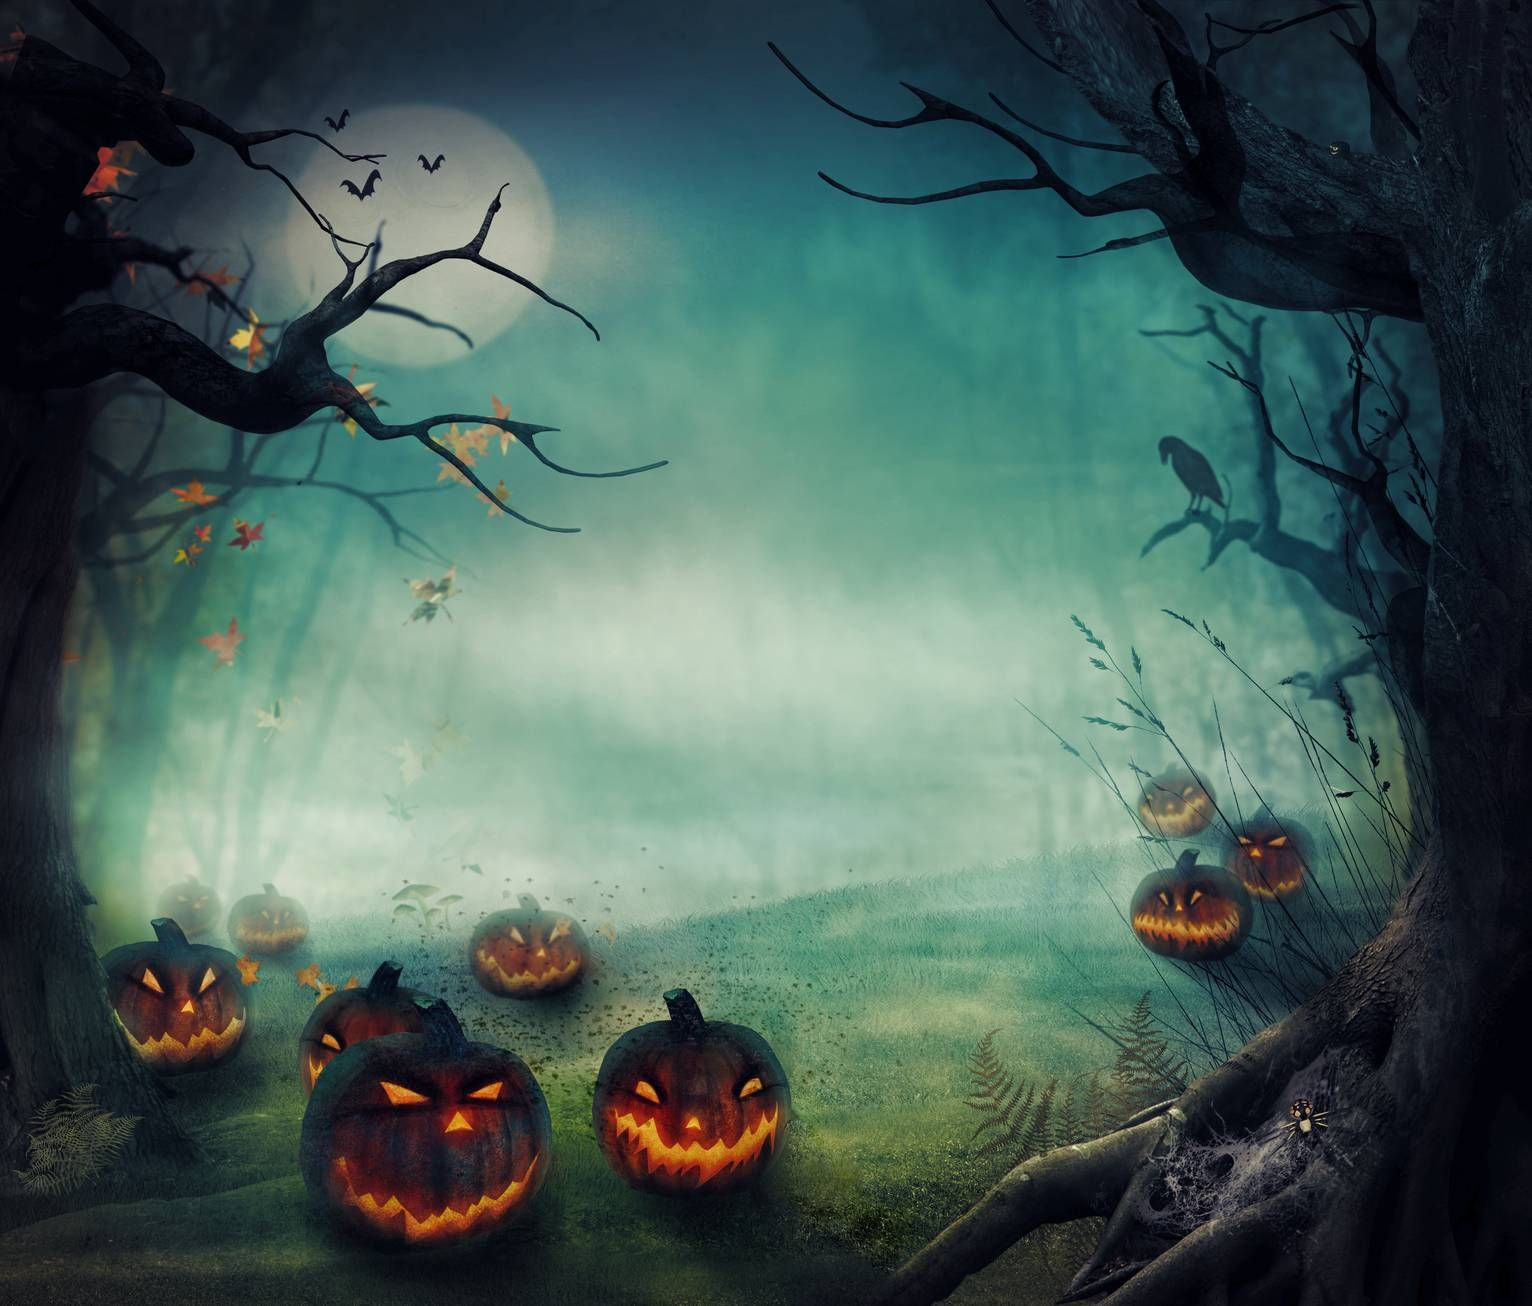 Scary Halloween Horror Halloween Backgrounds Wallpapers Free 1920